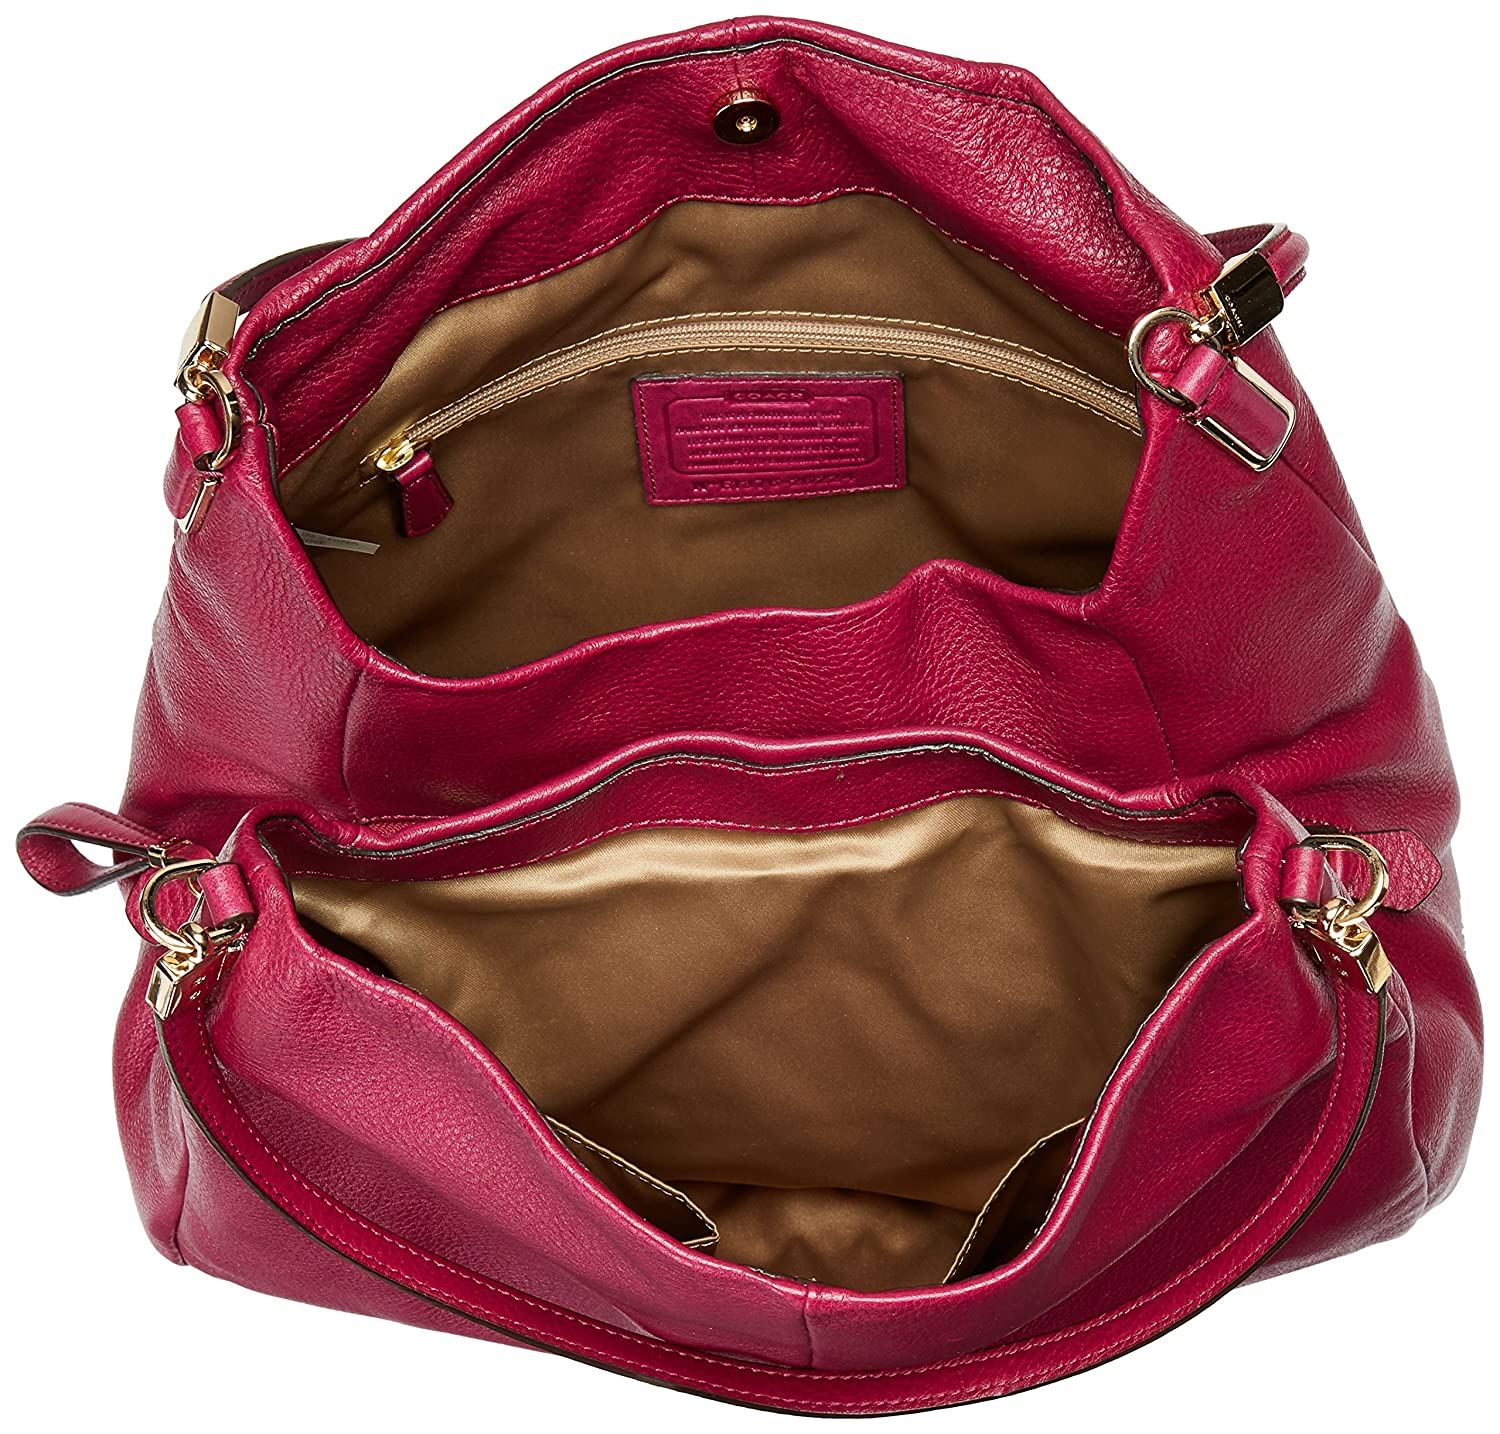 5ad439c395eb ... coupon code for coach madison leather small phoebe shoulder bag  shoulder bag cranberry amazon.in ...